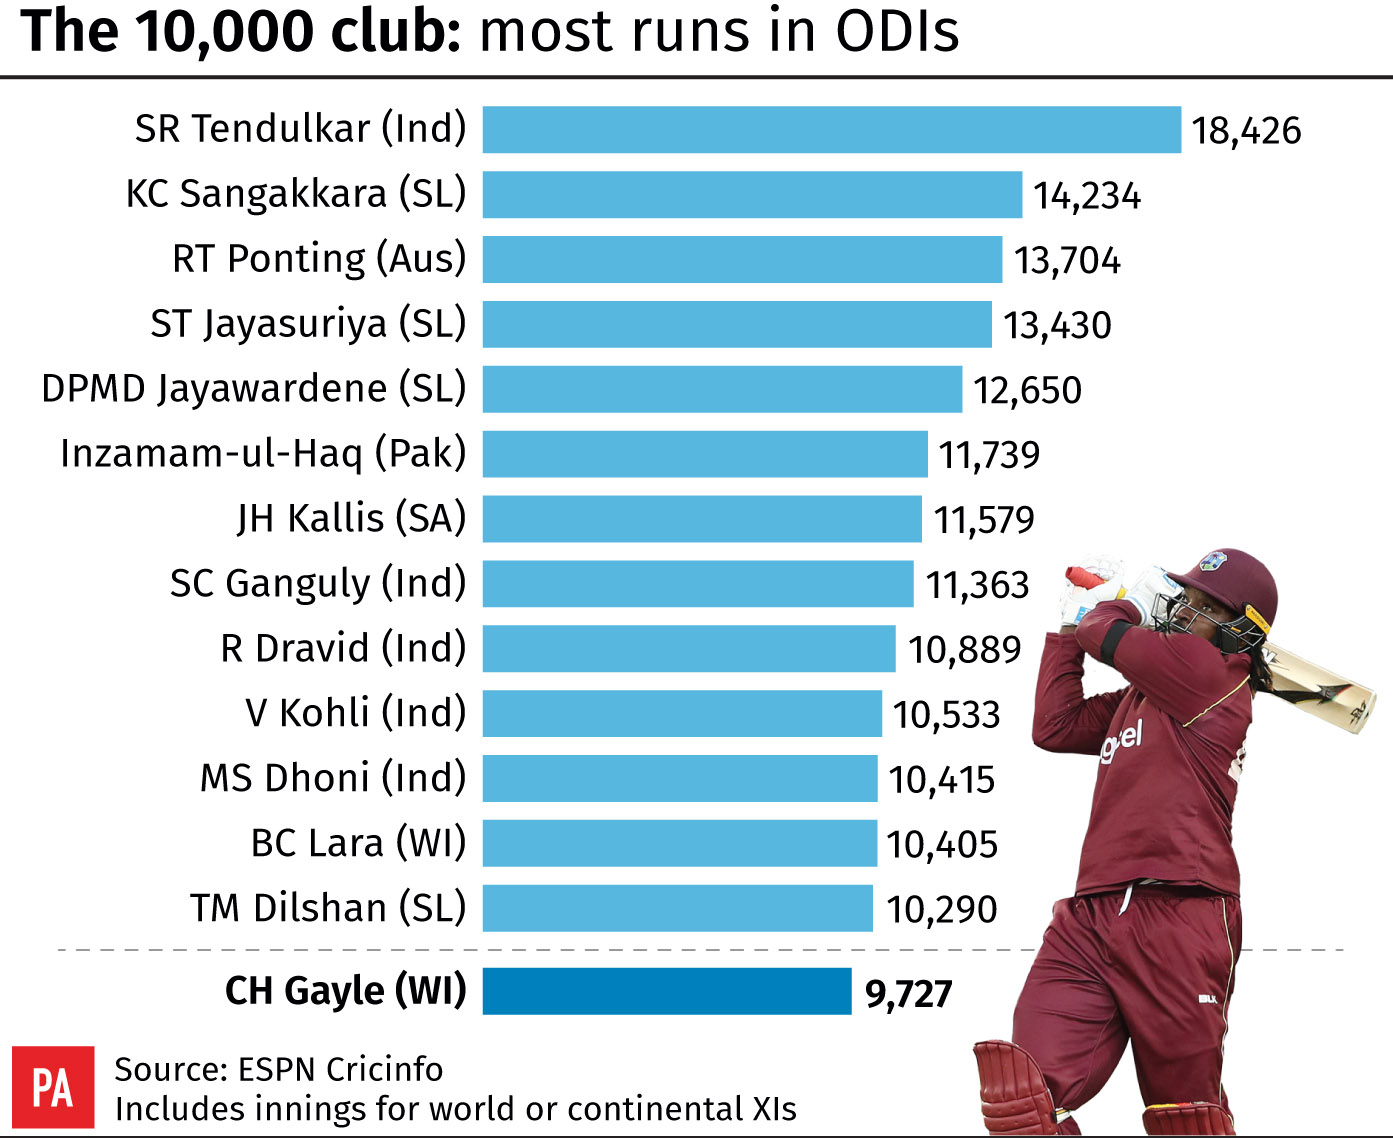 Leading ODI run-scorers